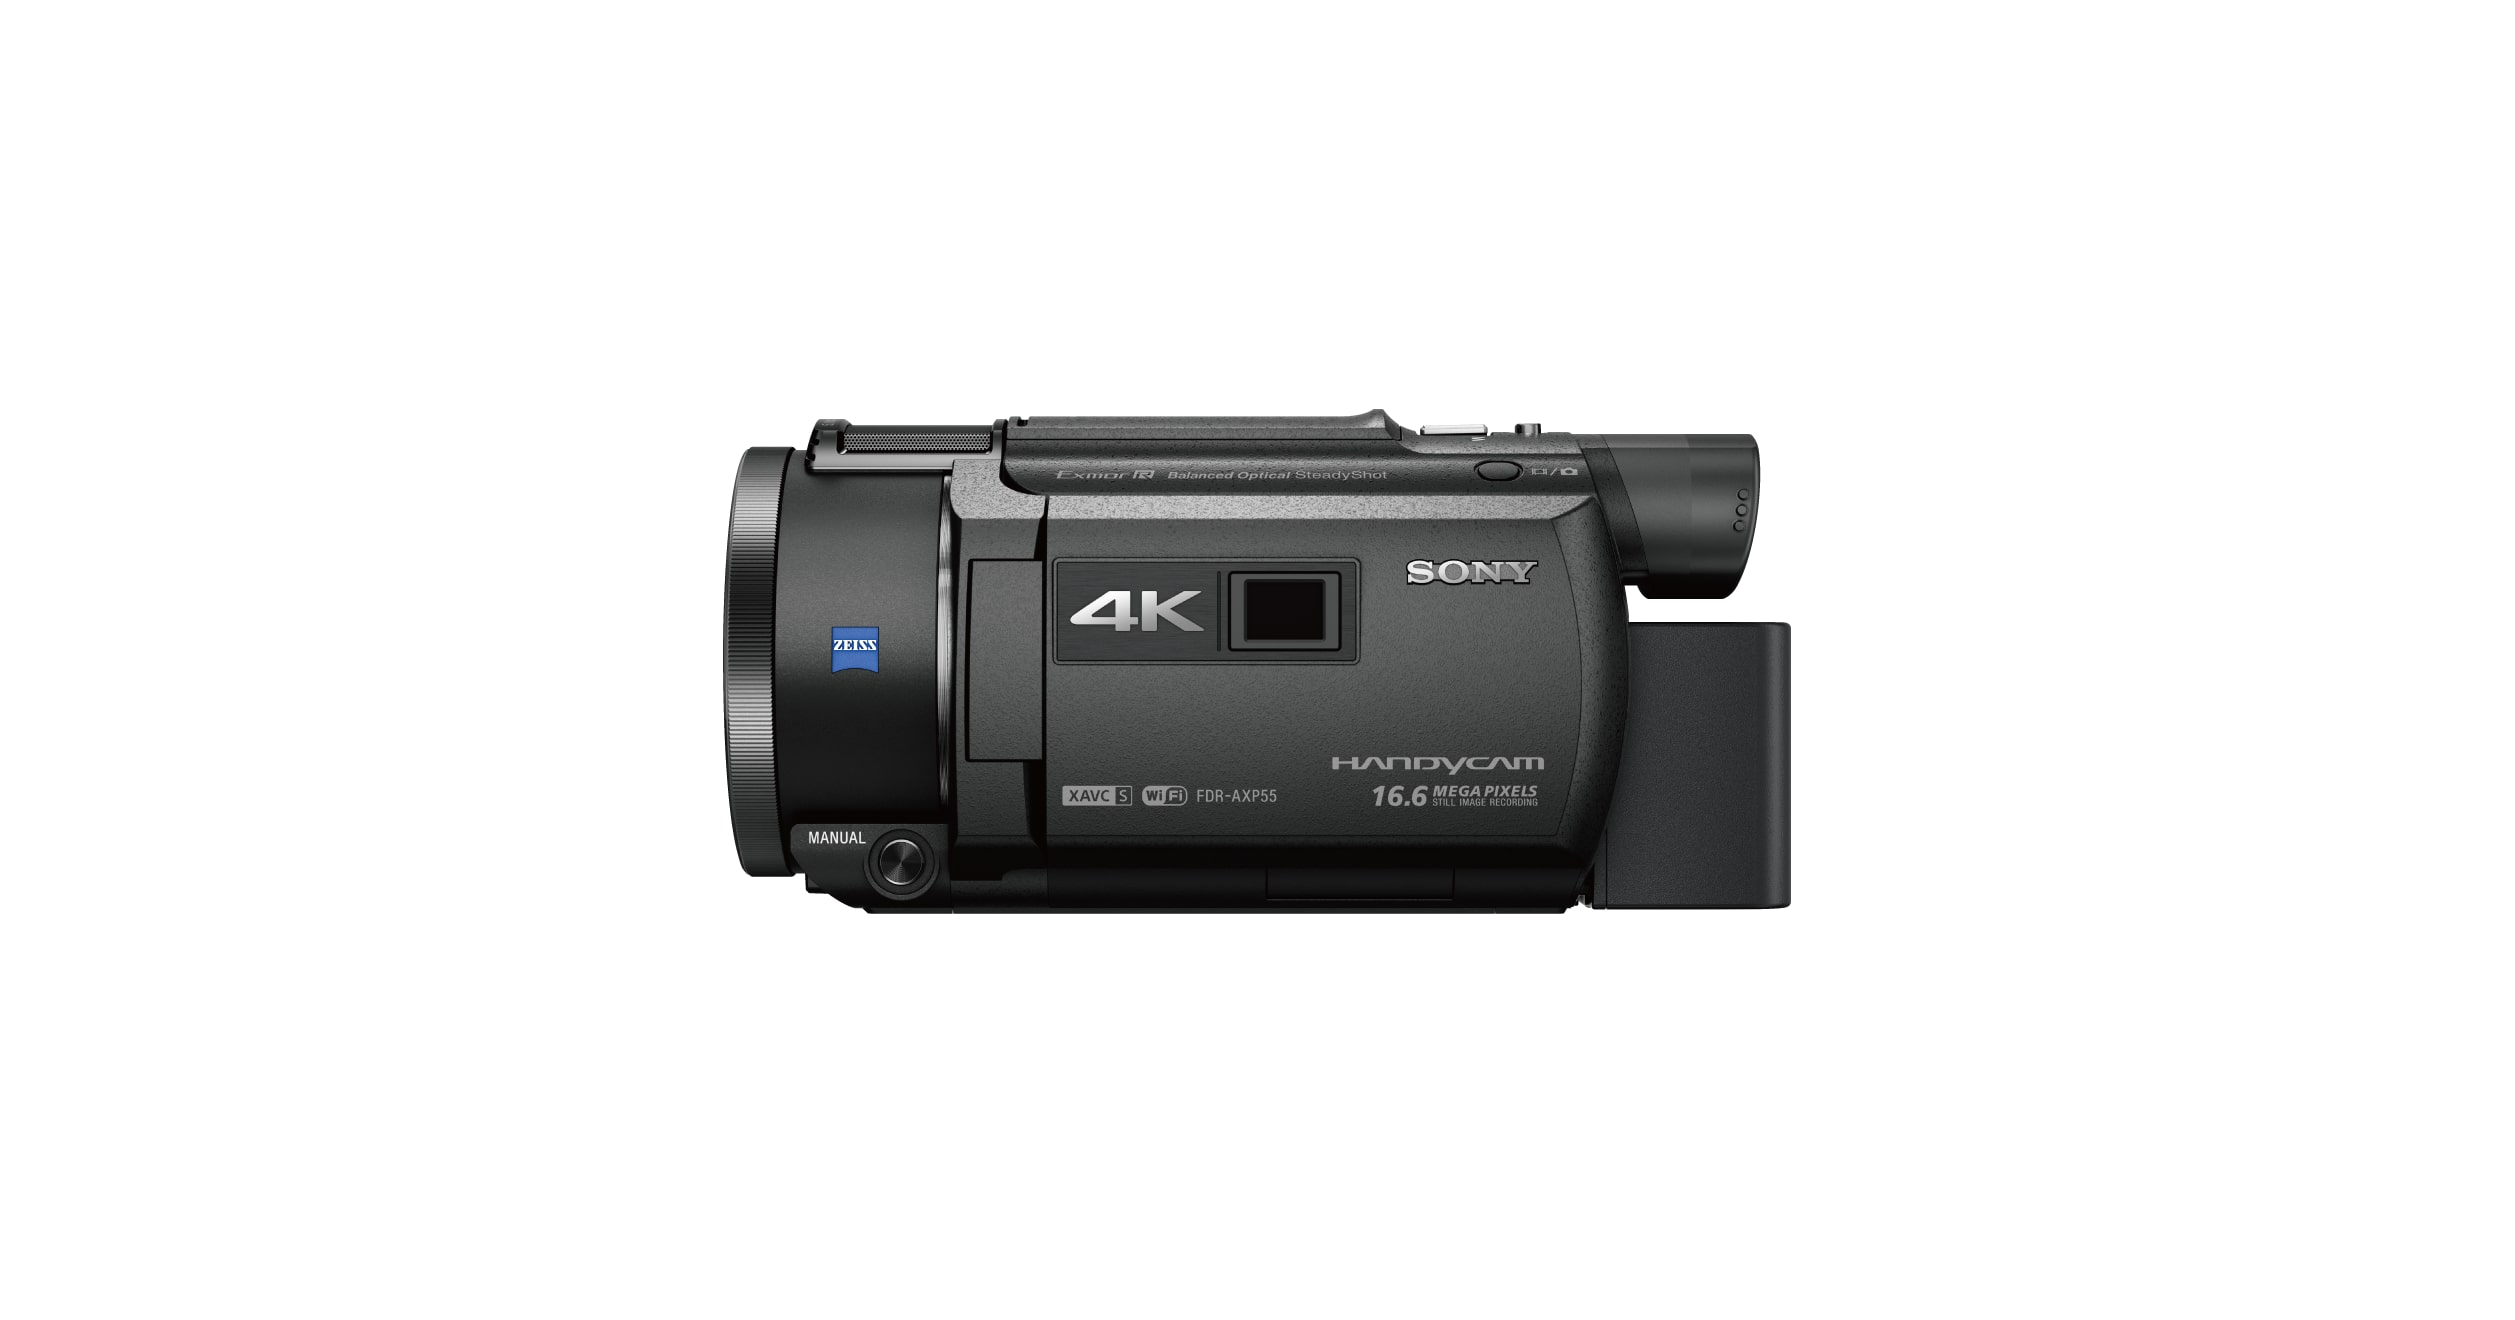 Axp55 4k Handycam With Built In Projector Fdr Axp55 Sony Asia Pacific